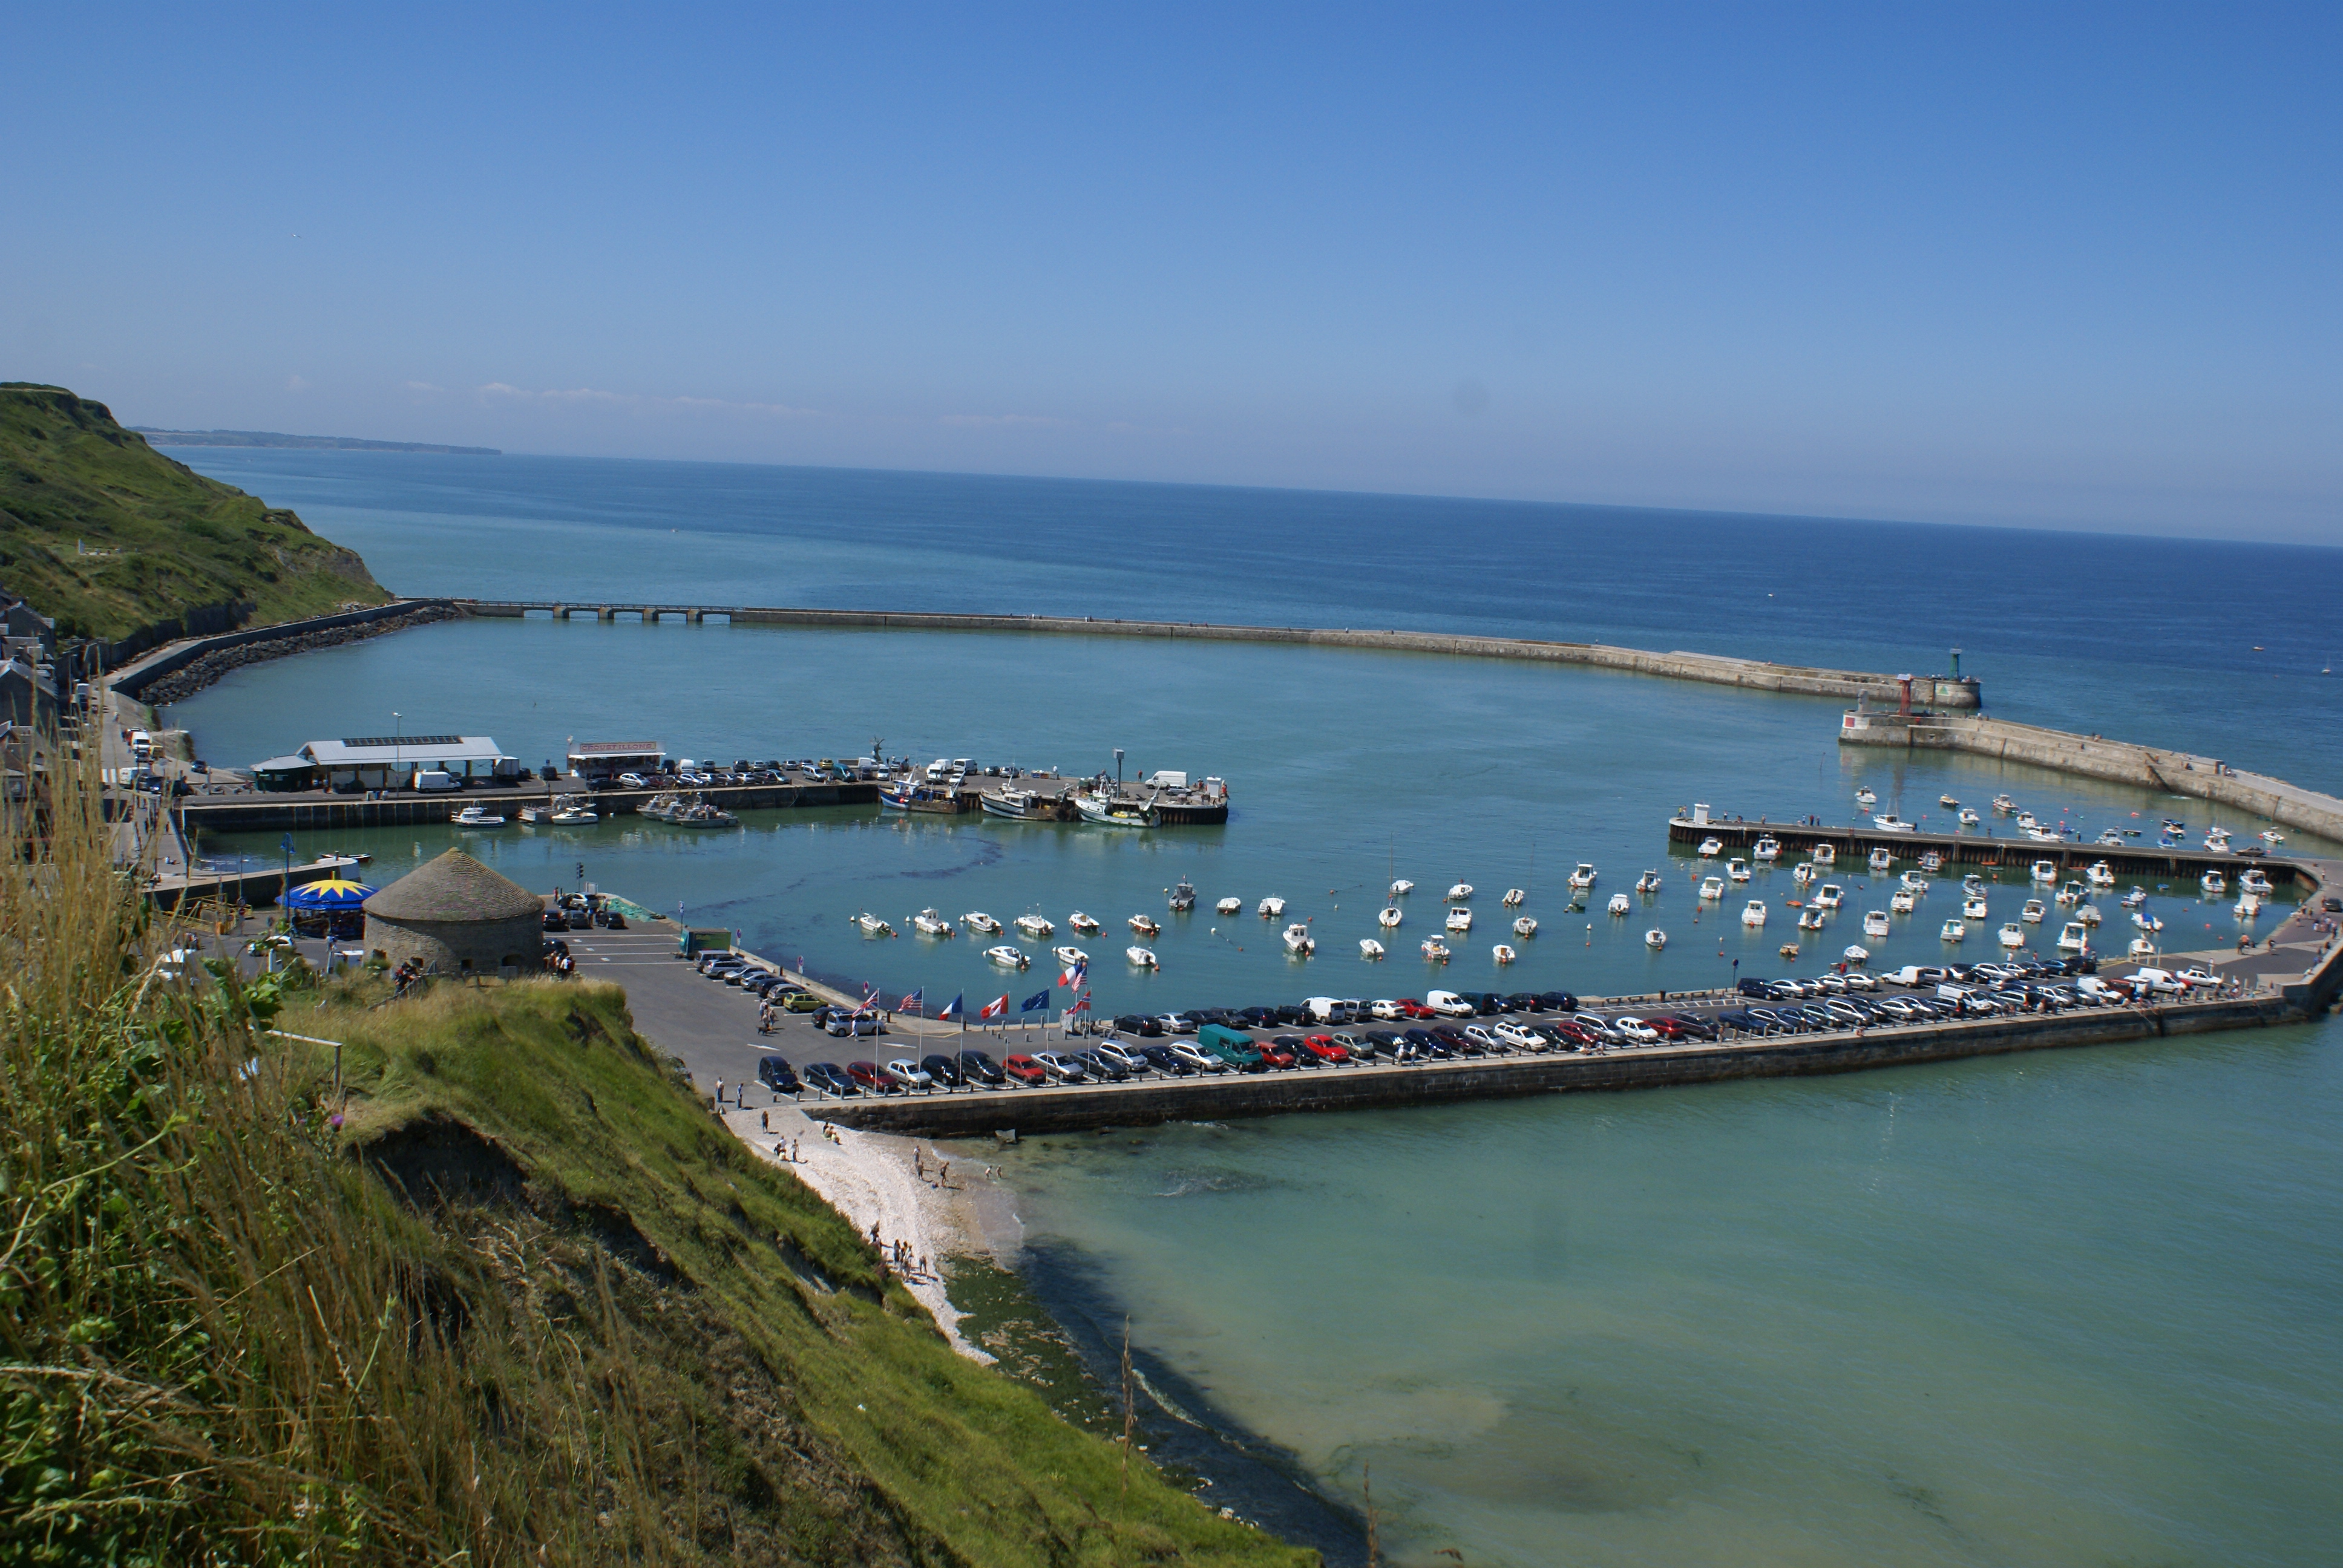 FilePortenbessinhuppain Bay HightideJPG Wikimedia Commons - Location port en bessin